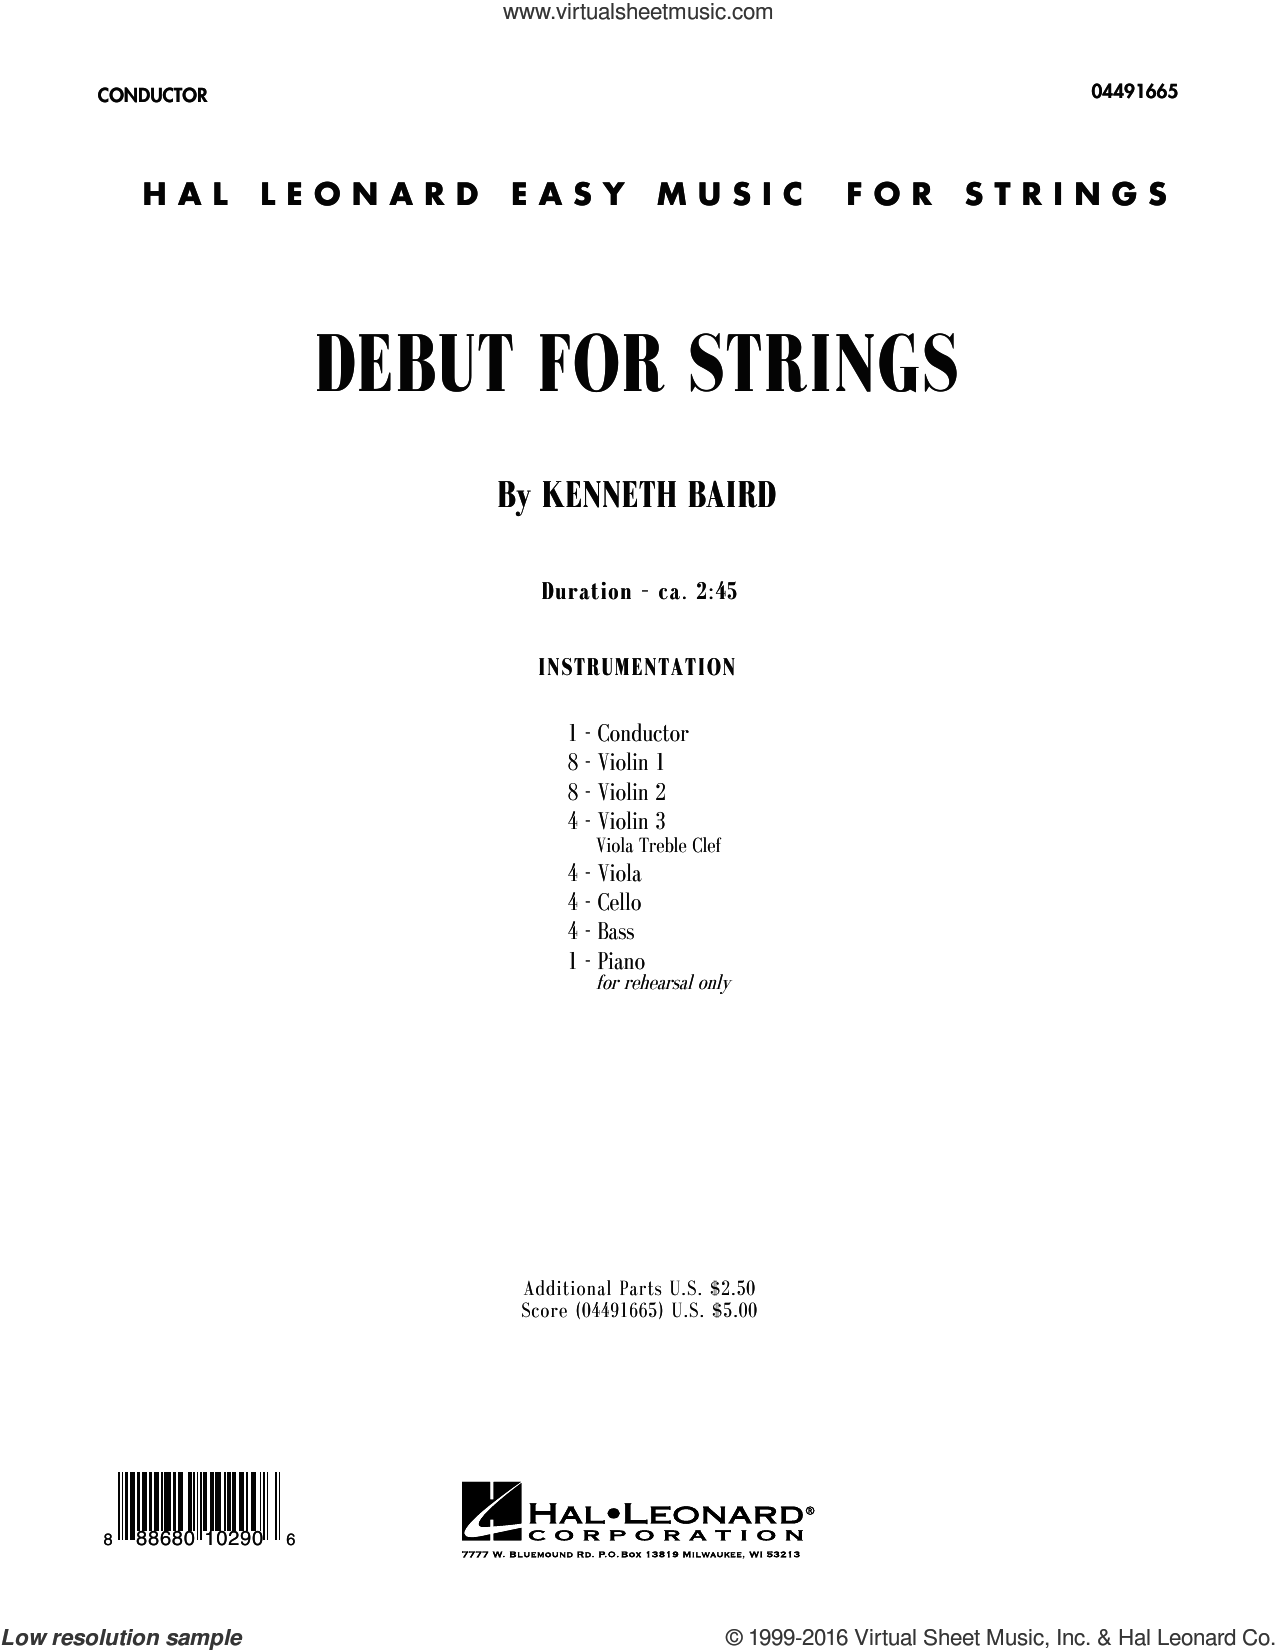 Debut for Strings (COMPLETE) sheet music for orchestra by Kenneth Baird